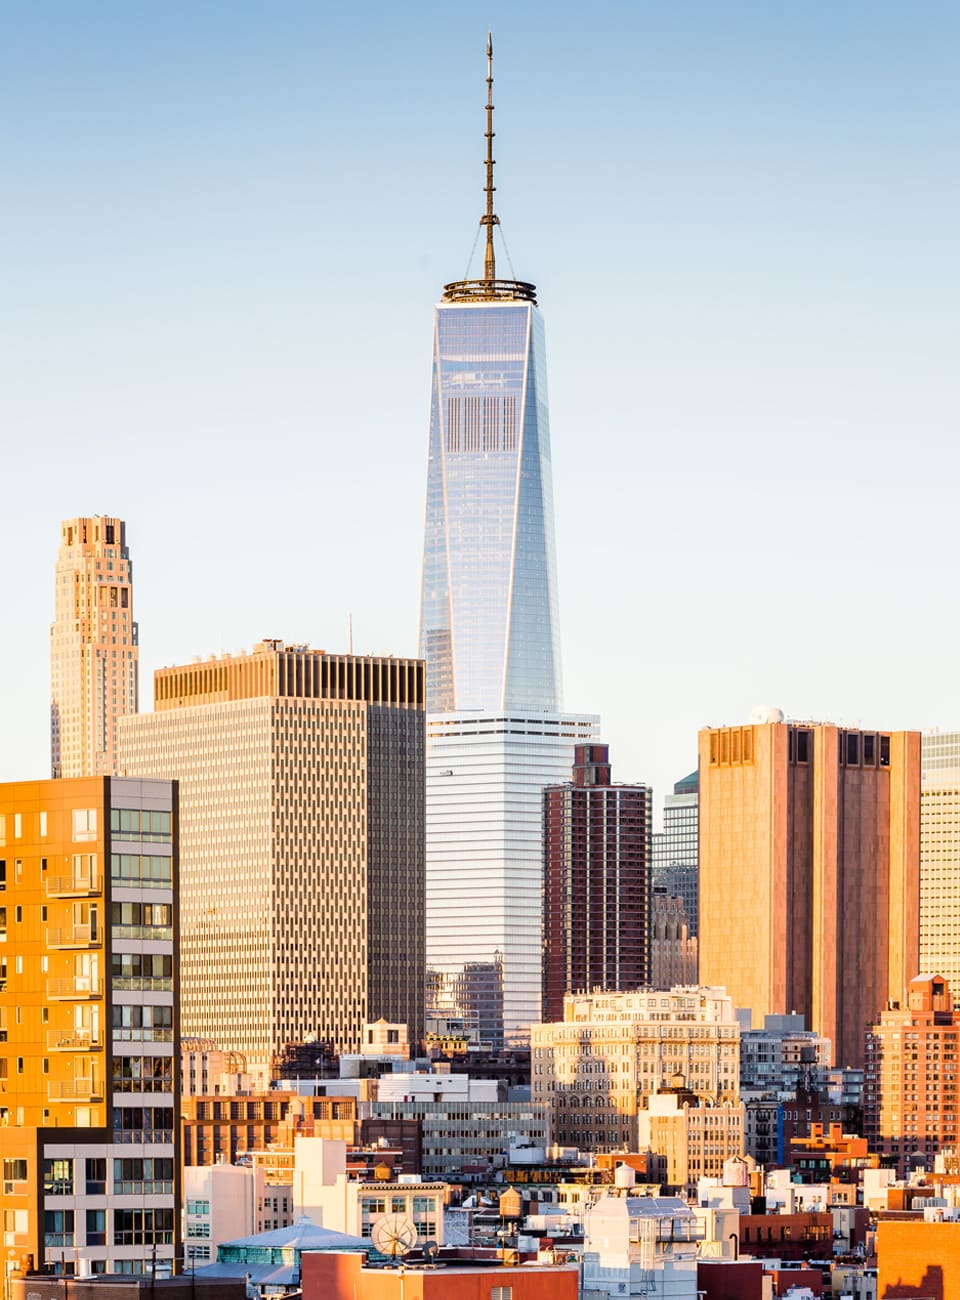 simoarts-com-simone-kessler-fotokunst-nuernberg-new-york-city-manhattan-freedom-tower-1_milieu